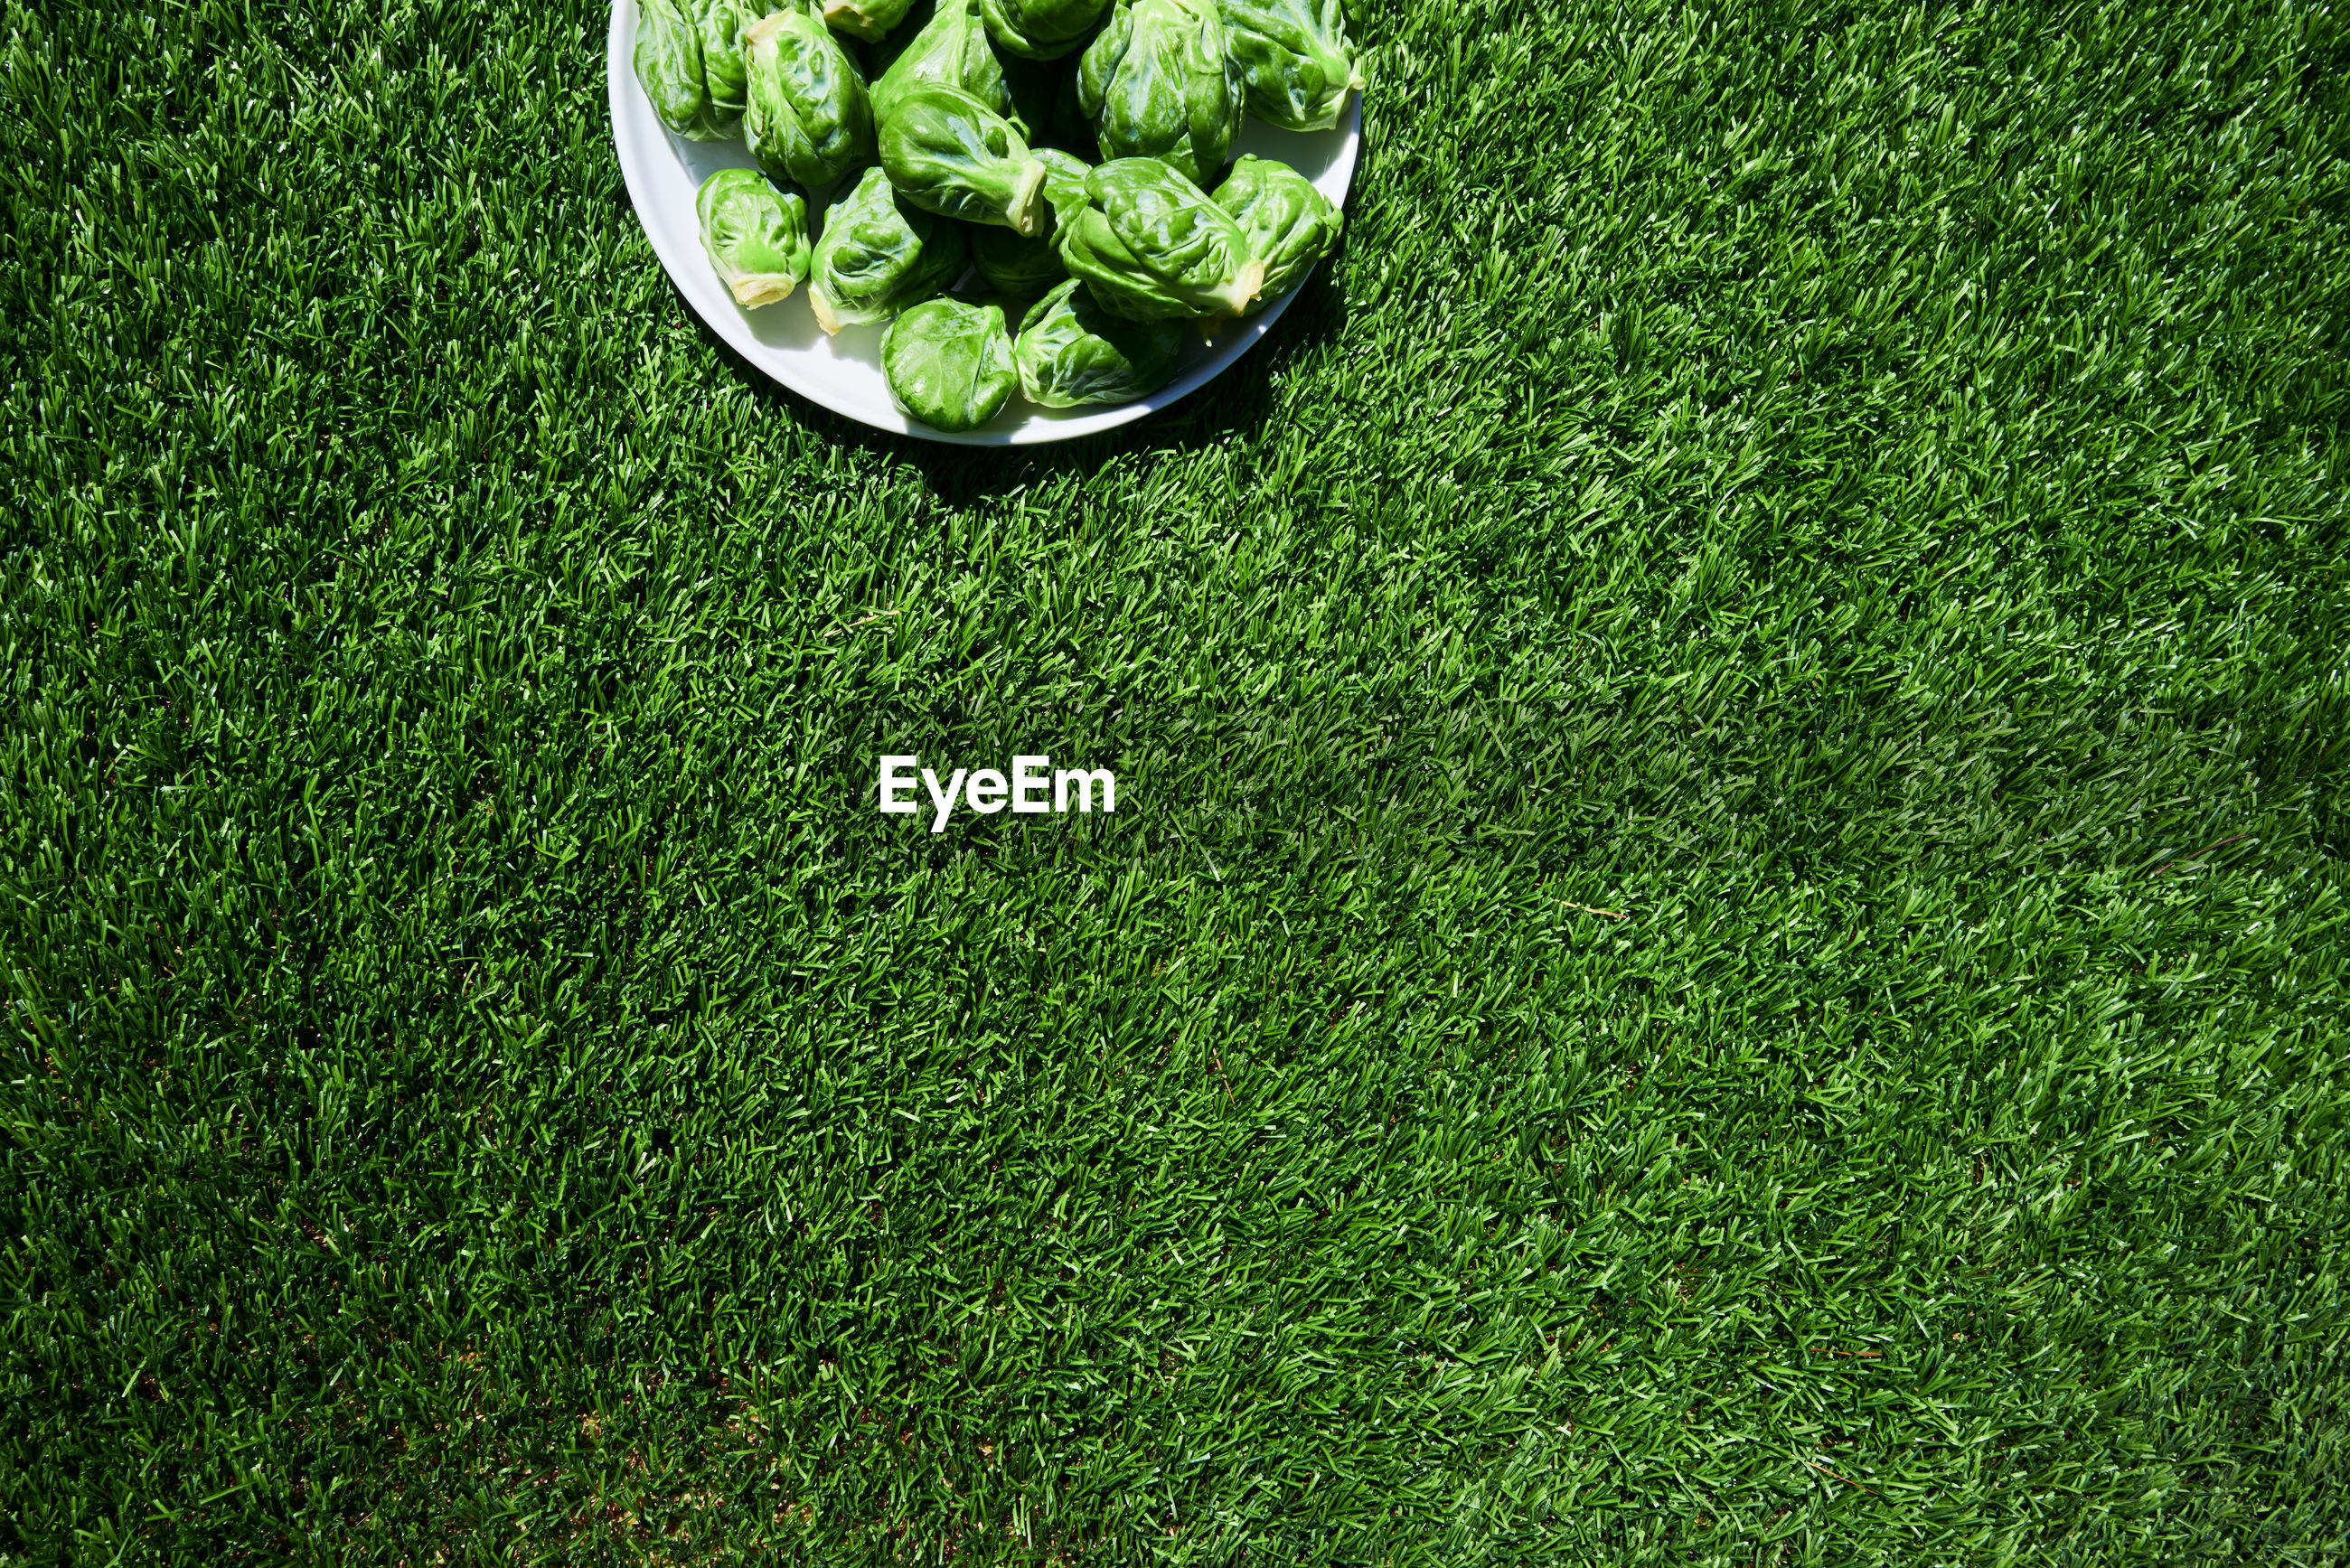 Directly above shot of brussels sprouts on grassy field